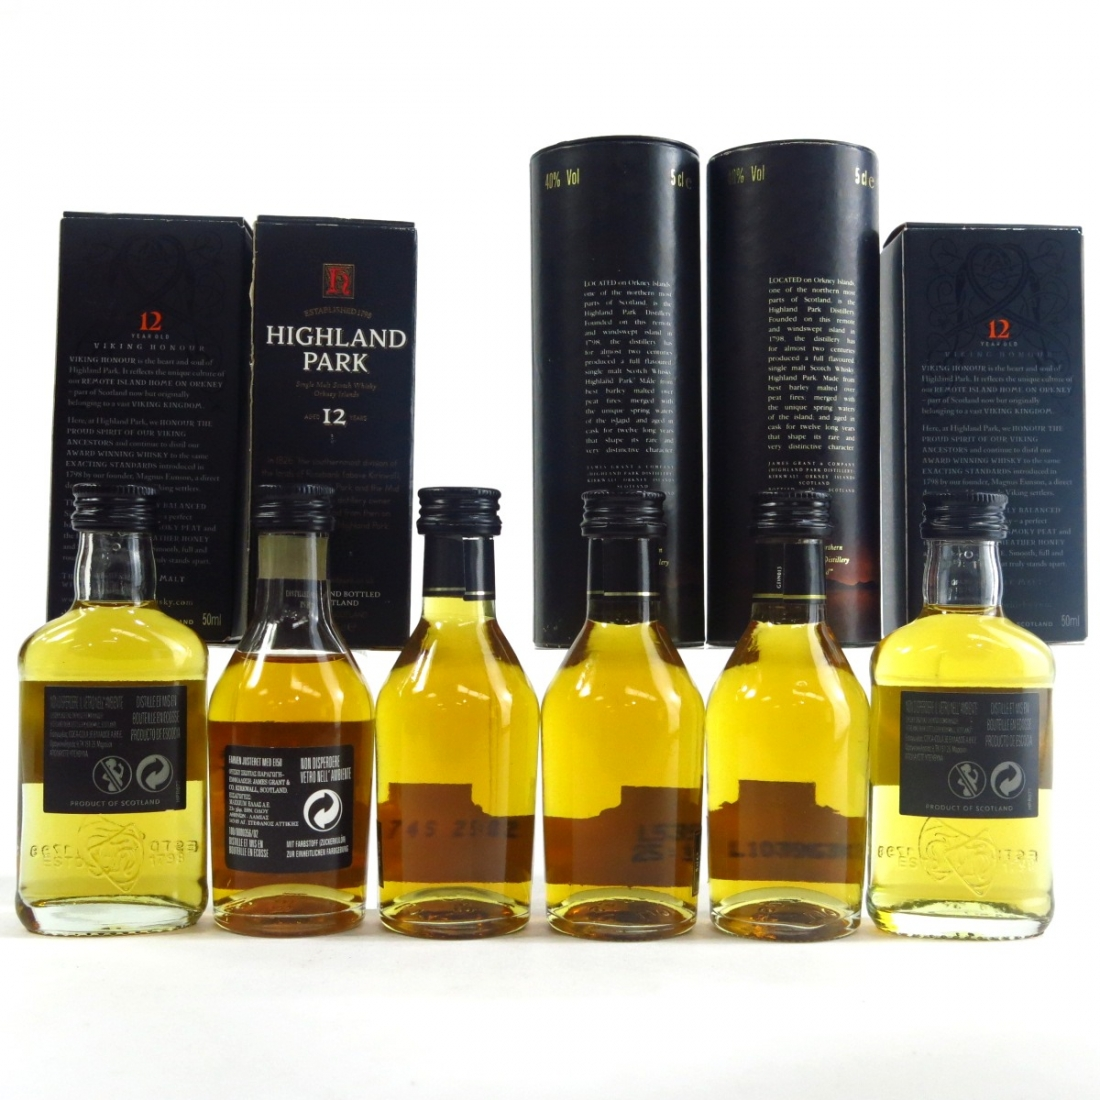 Highland Park 12 Year Old Miniatures 6 x 5cl